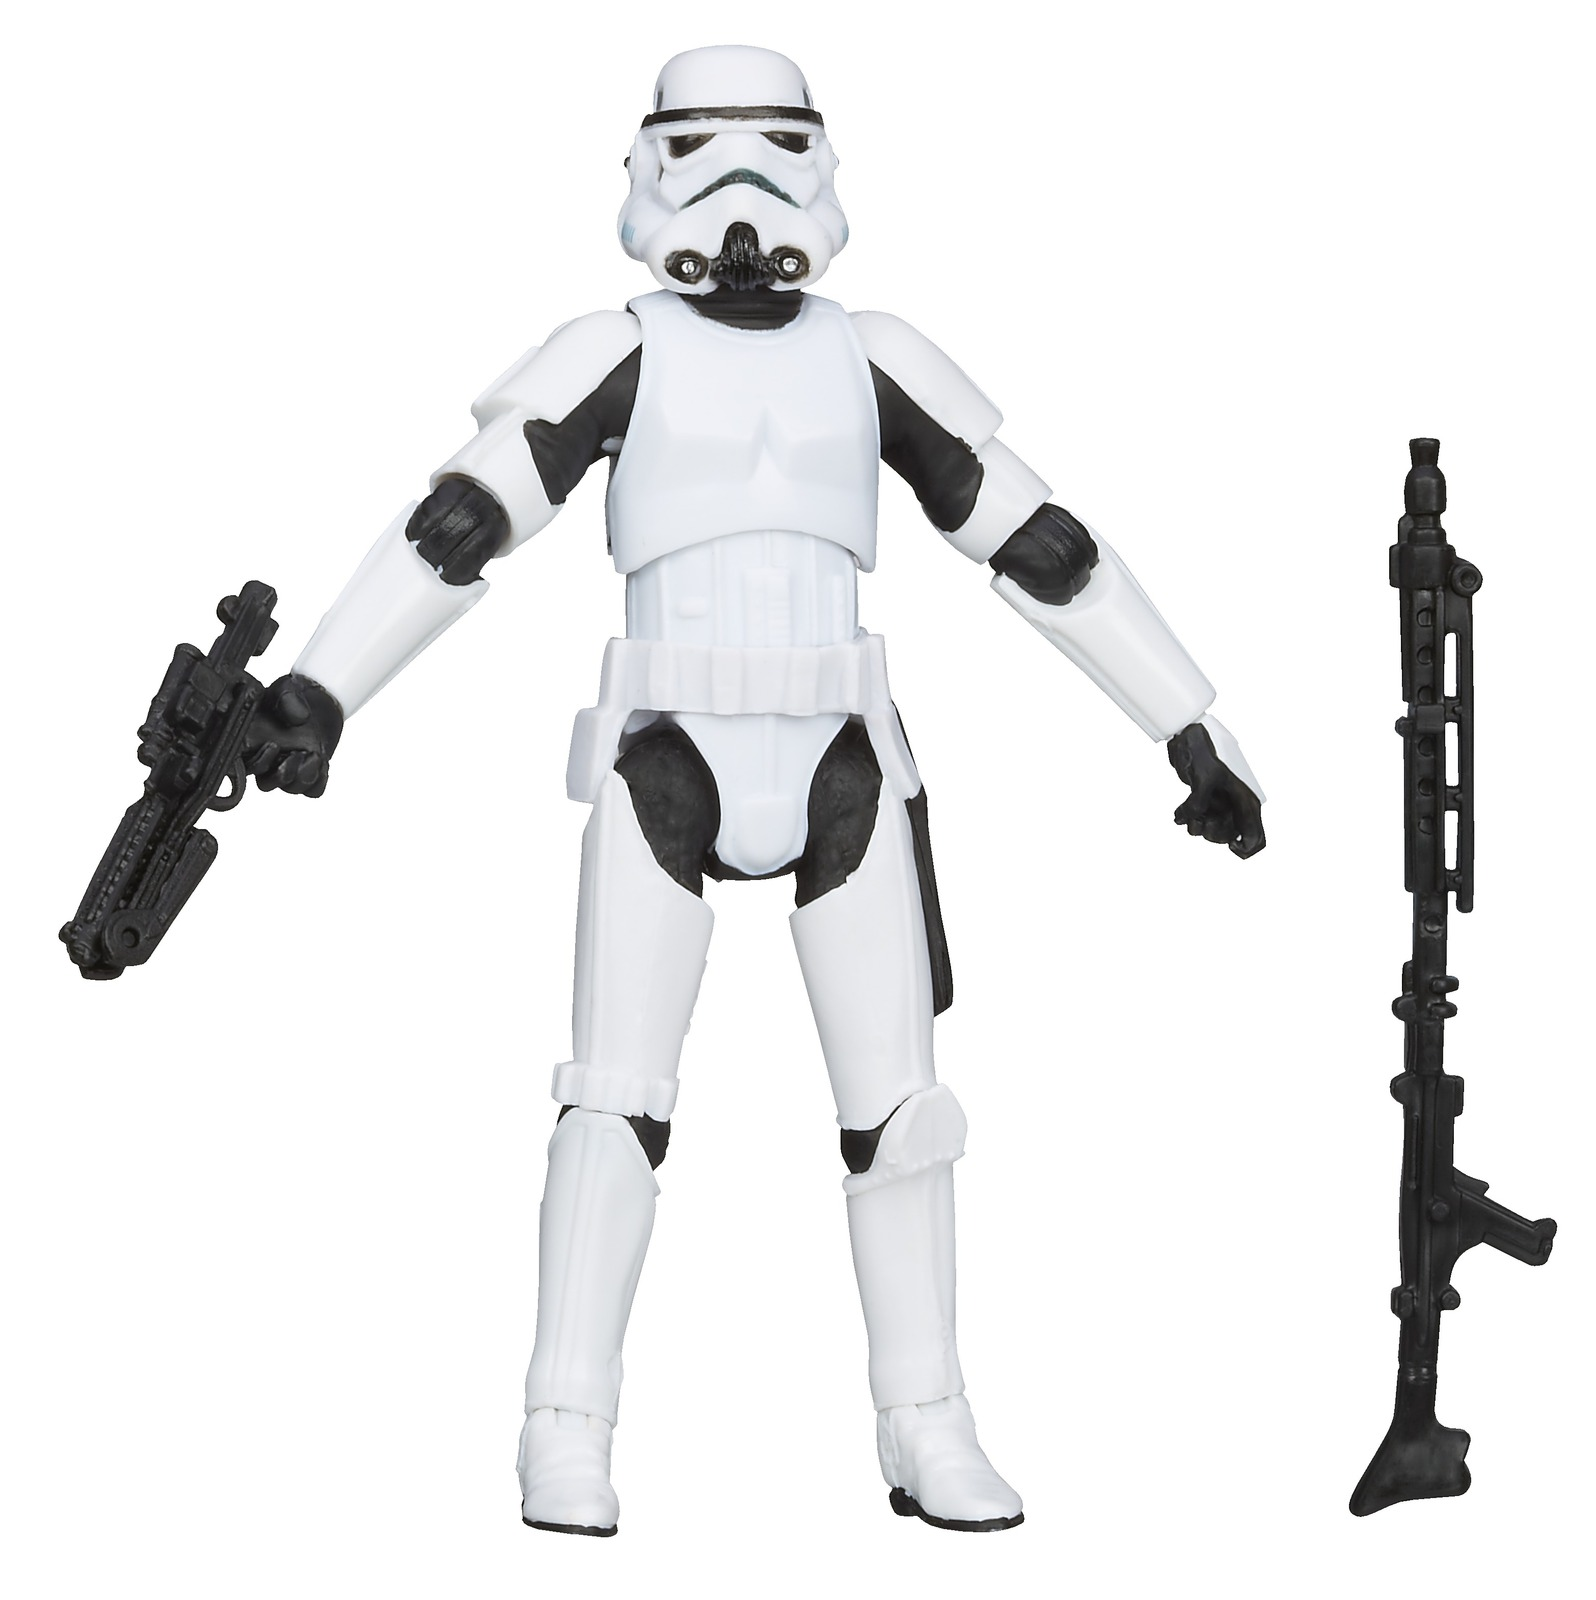 "Star Wars 3.75"" Black Series Action Figure - Stormtrooper image"